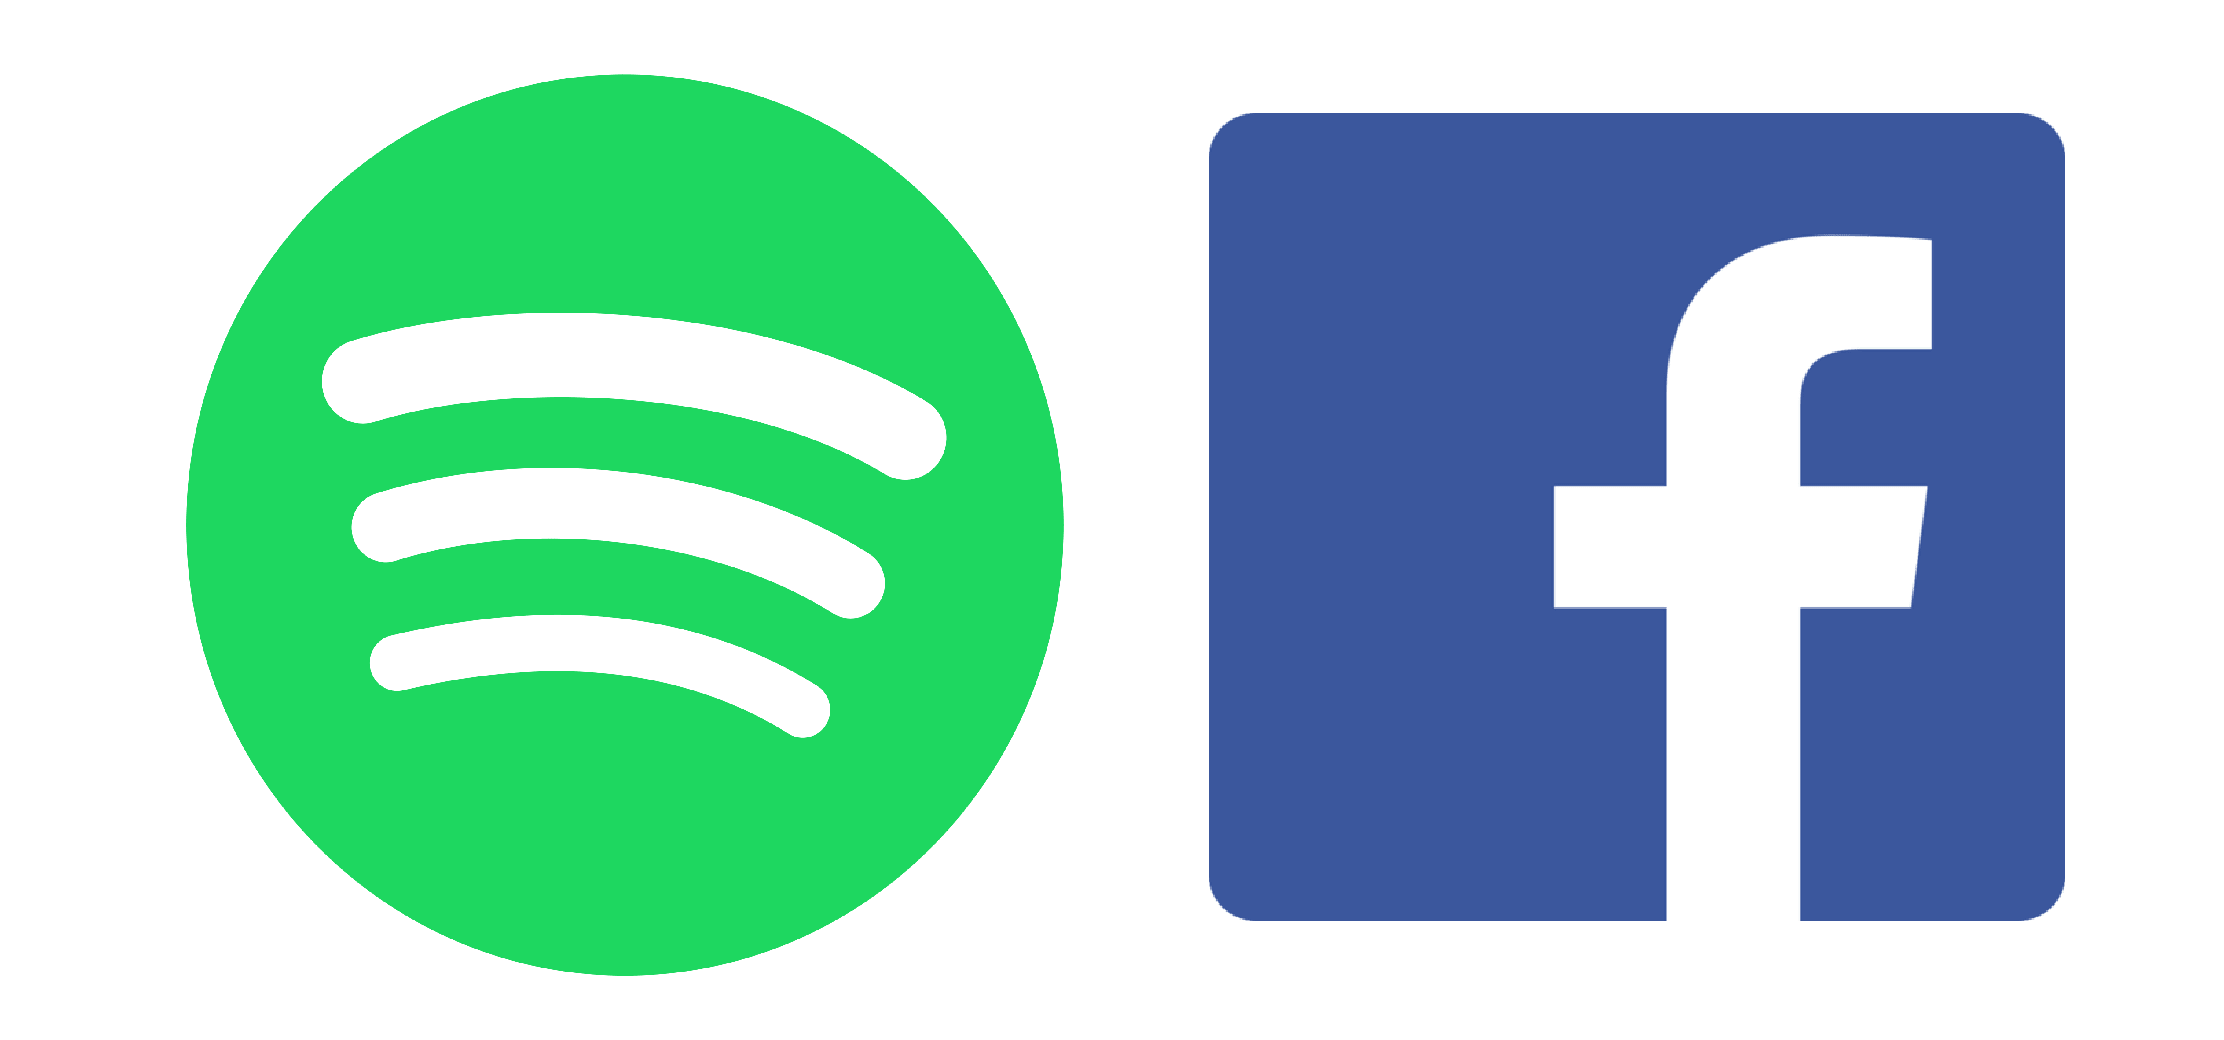 How To Disconnect Spotify From Facebook 2020